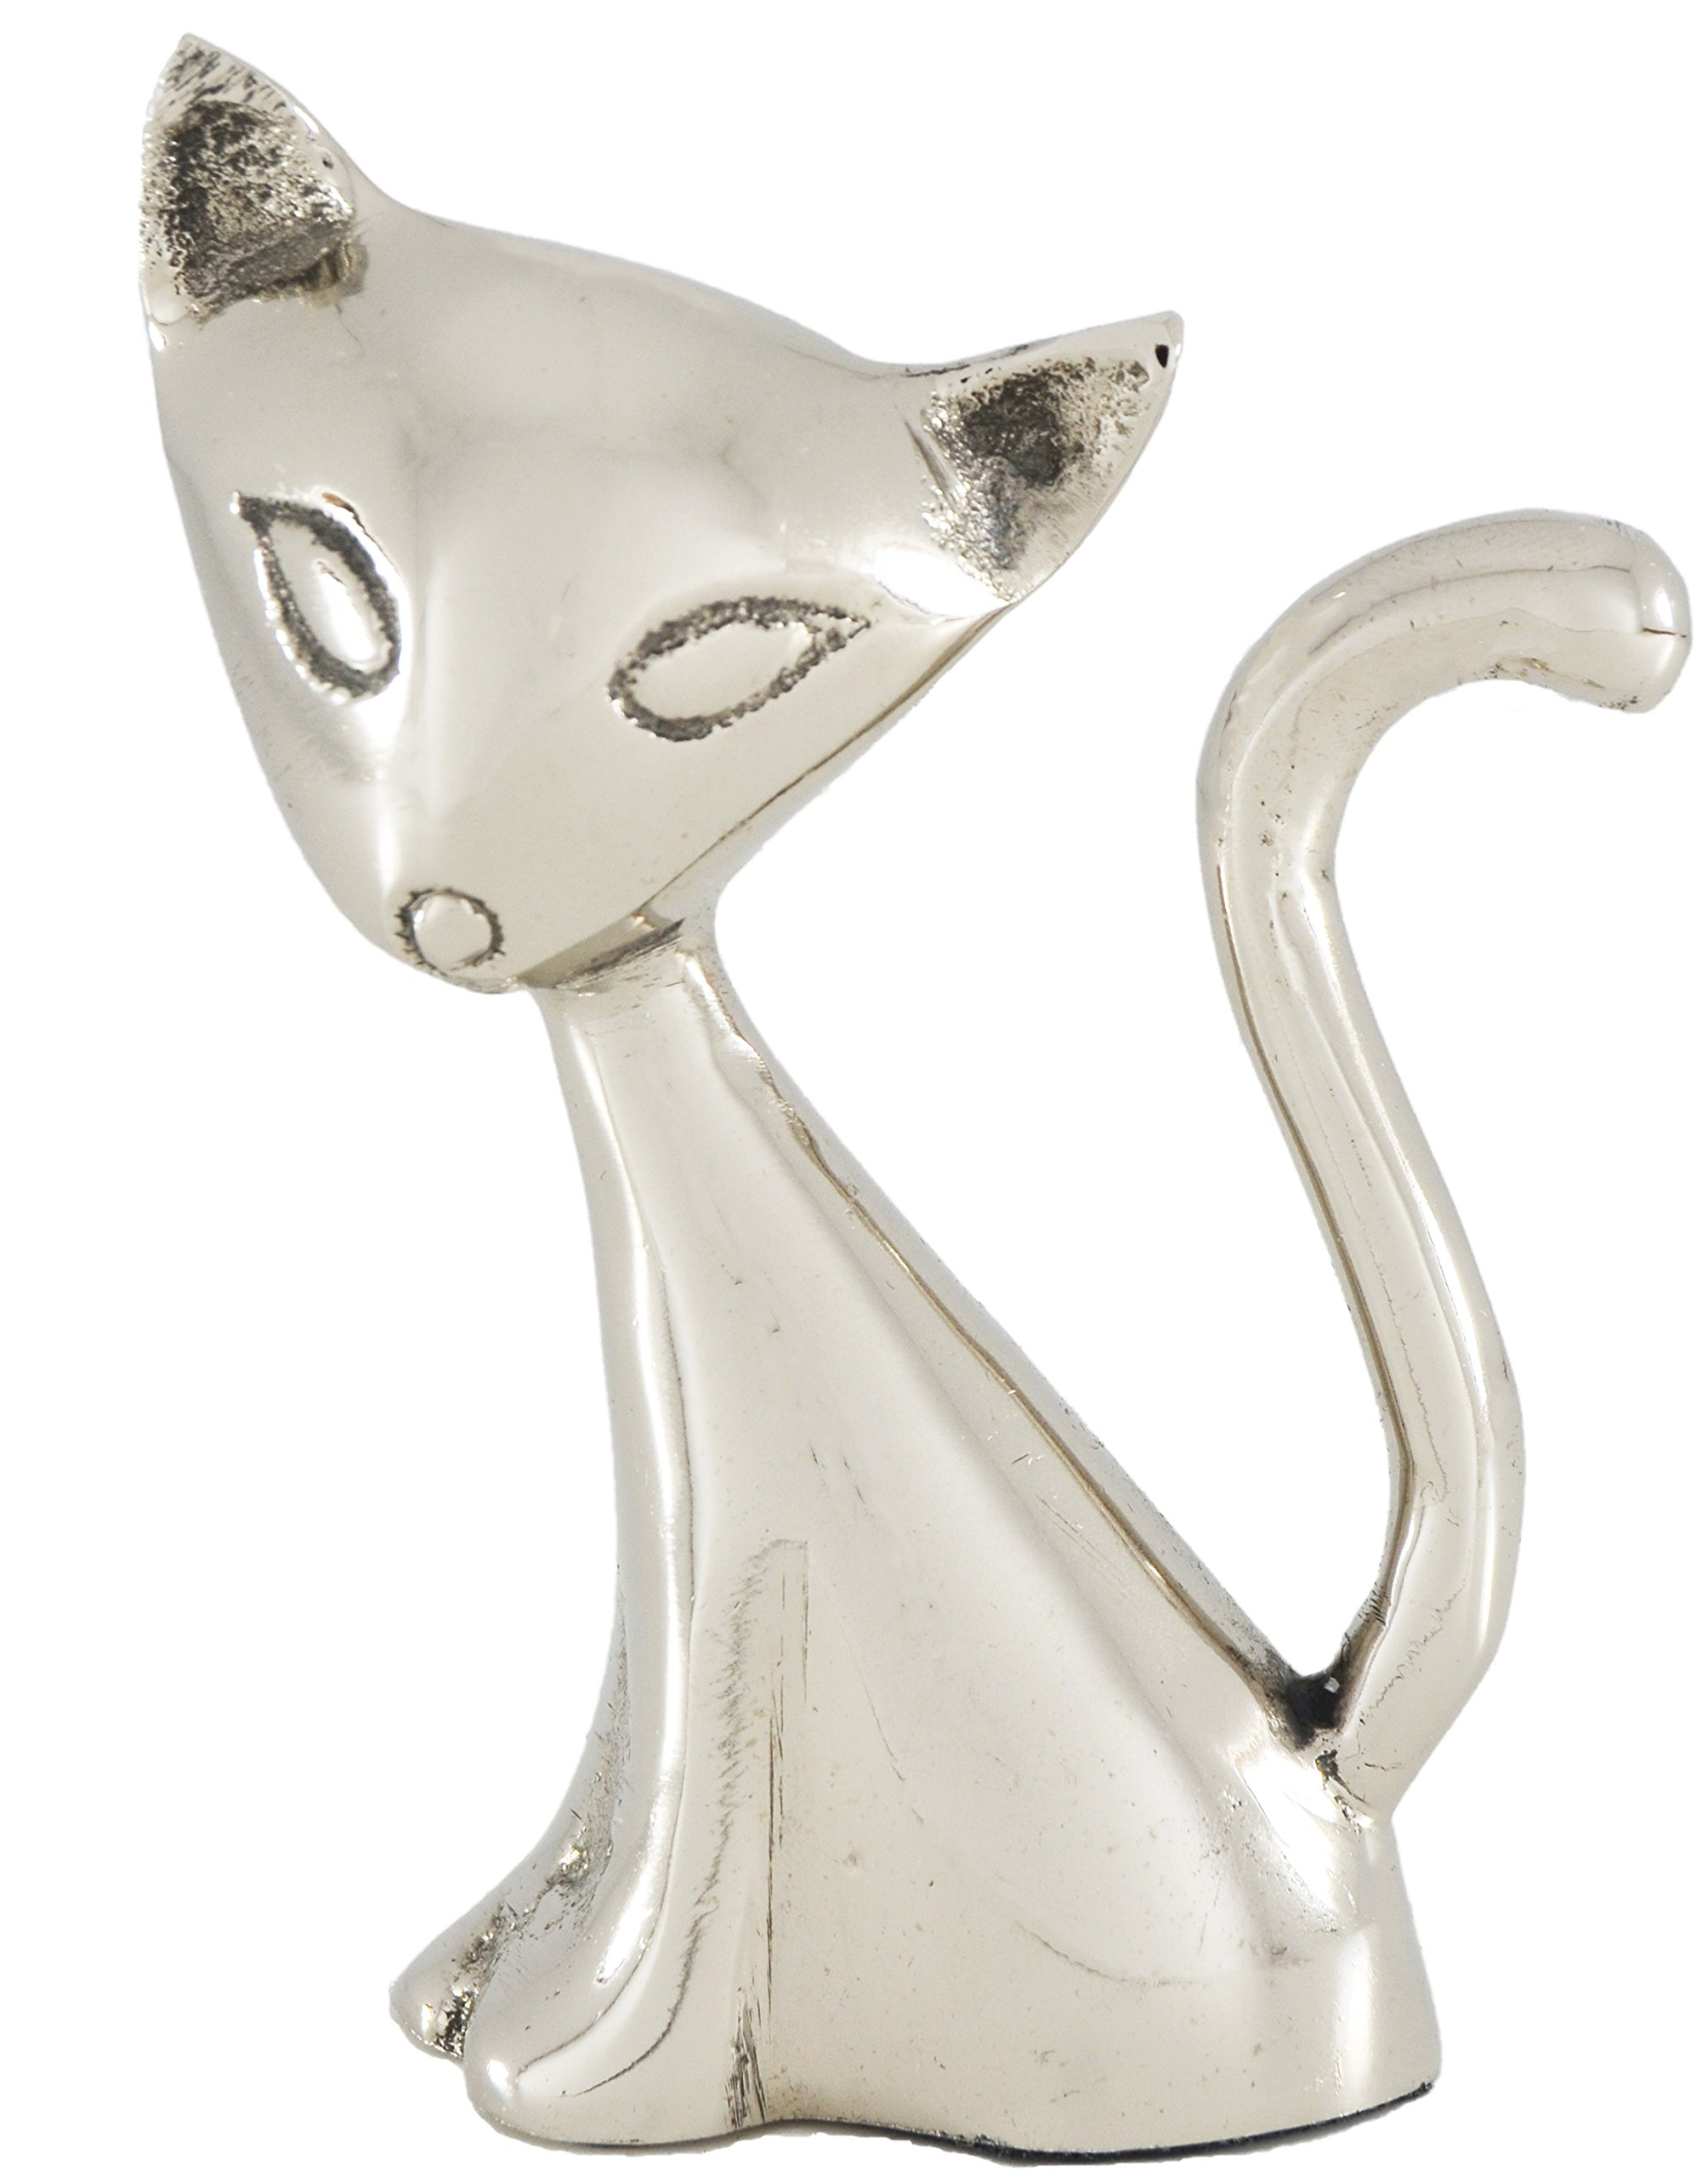 classy R us Handmade Cat Ring Holder Modern Jewelry Organizer. Engagement Ring and Wedding Ring Display Holder Stand Silver Cute Ring Holders for Jewelry (5.4 oz, 2.3'' Tail) Animal Figurines